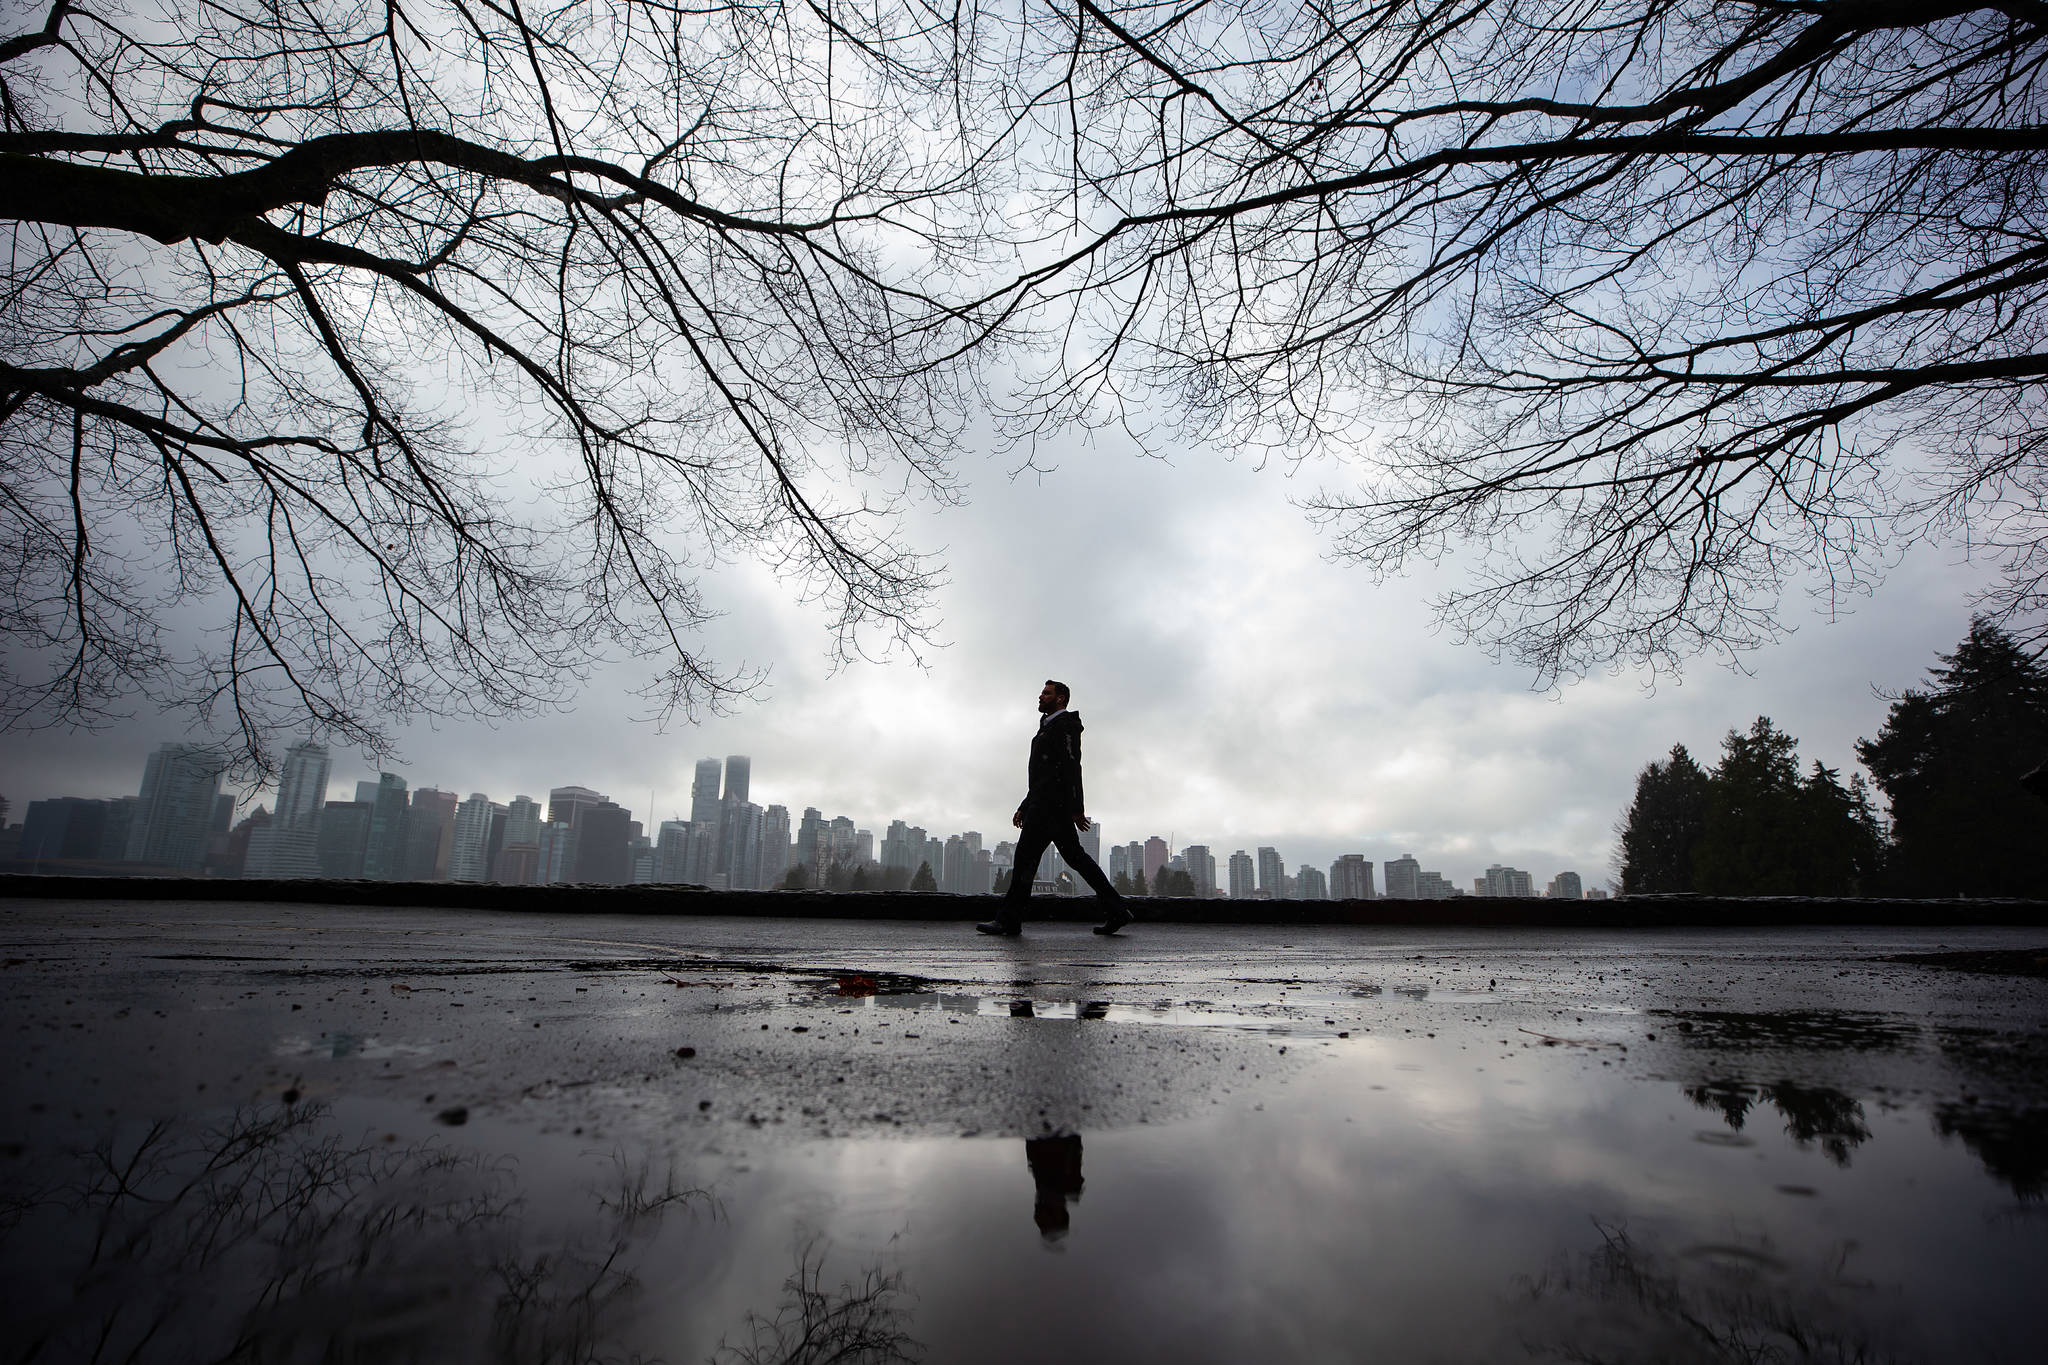 The sun begins to break through the clouds above the downtown skyline as a man walks on the seawall in Stanley Park, in Vancouver, on Wednesday, December 9, 2020. THE CANADIAN PRESS/Darryl Dyck